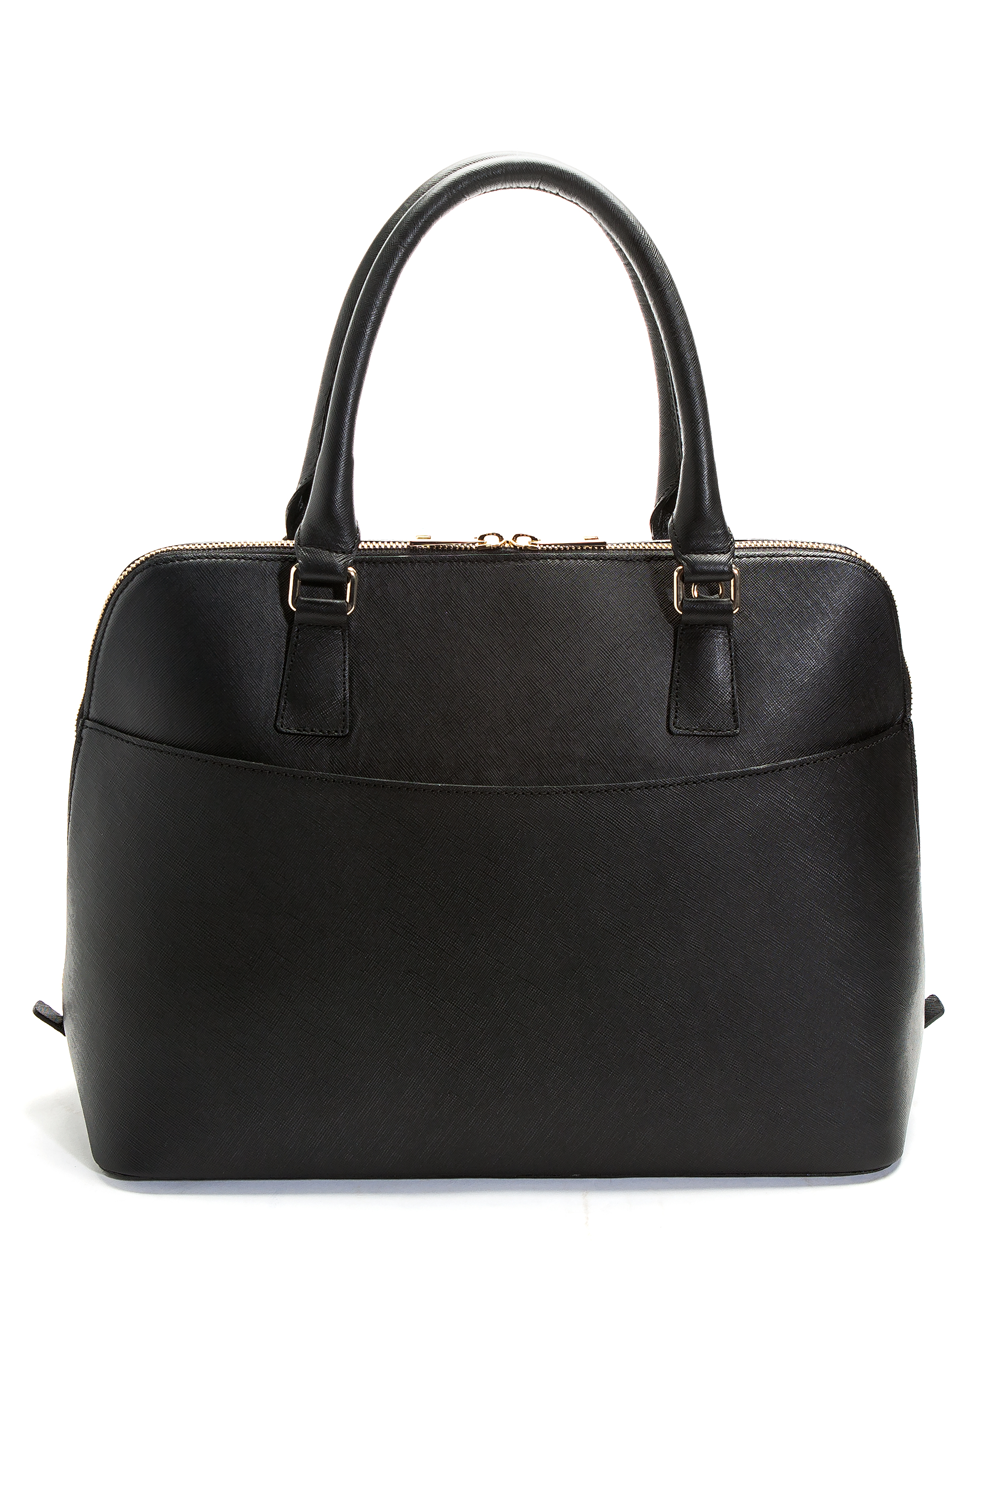 Mel Boteri Black Saffiano Leather 'Watson' Tote | Back View